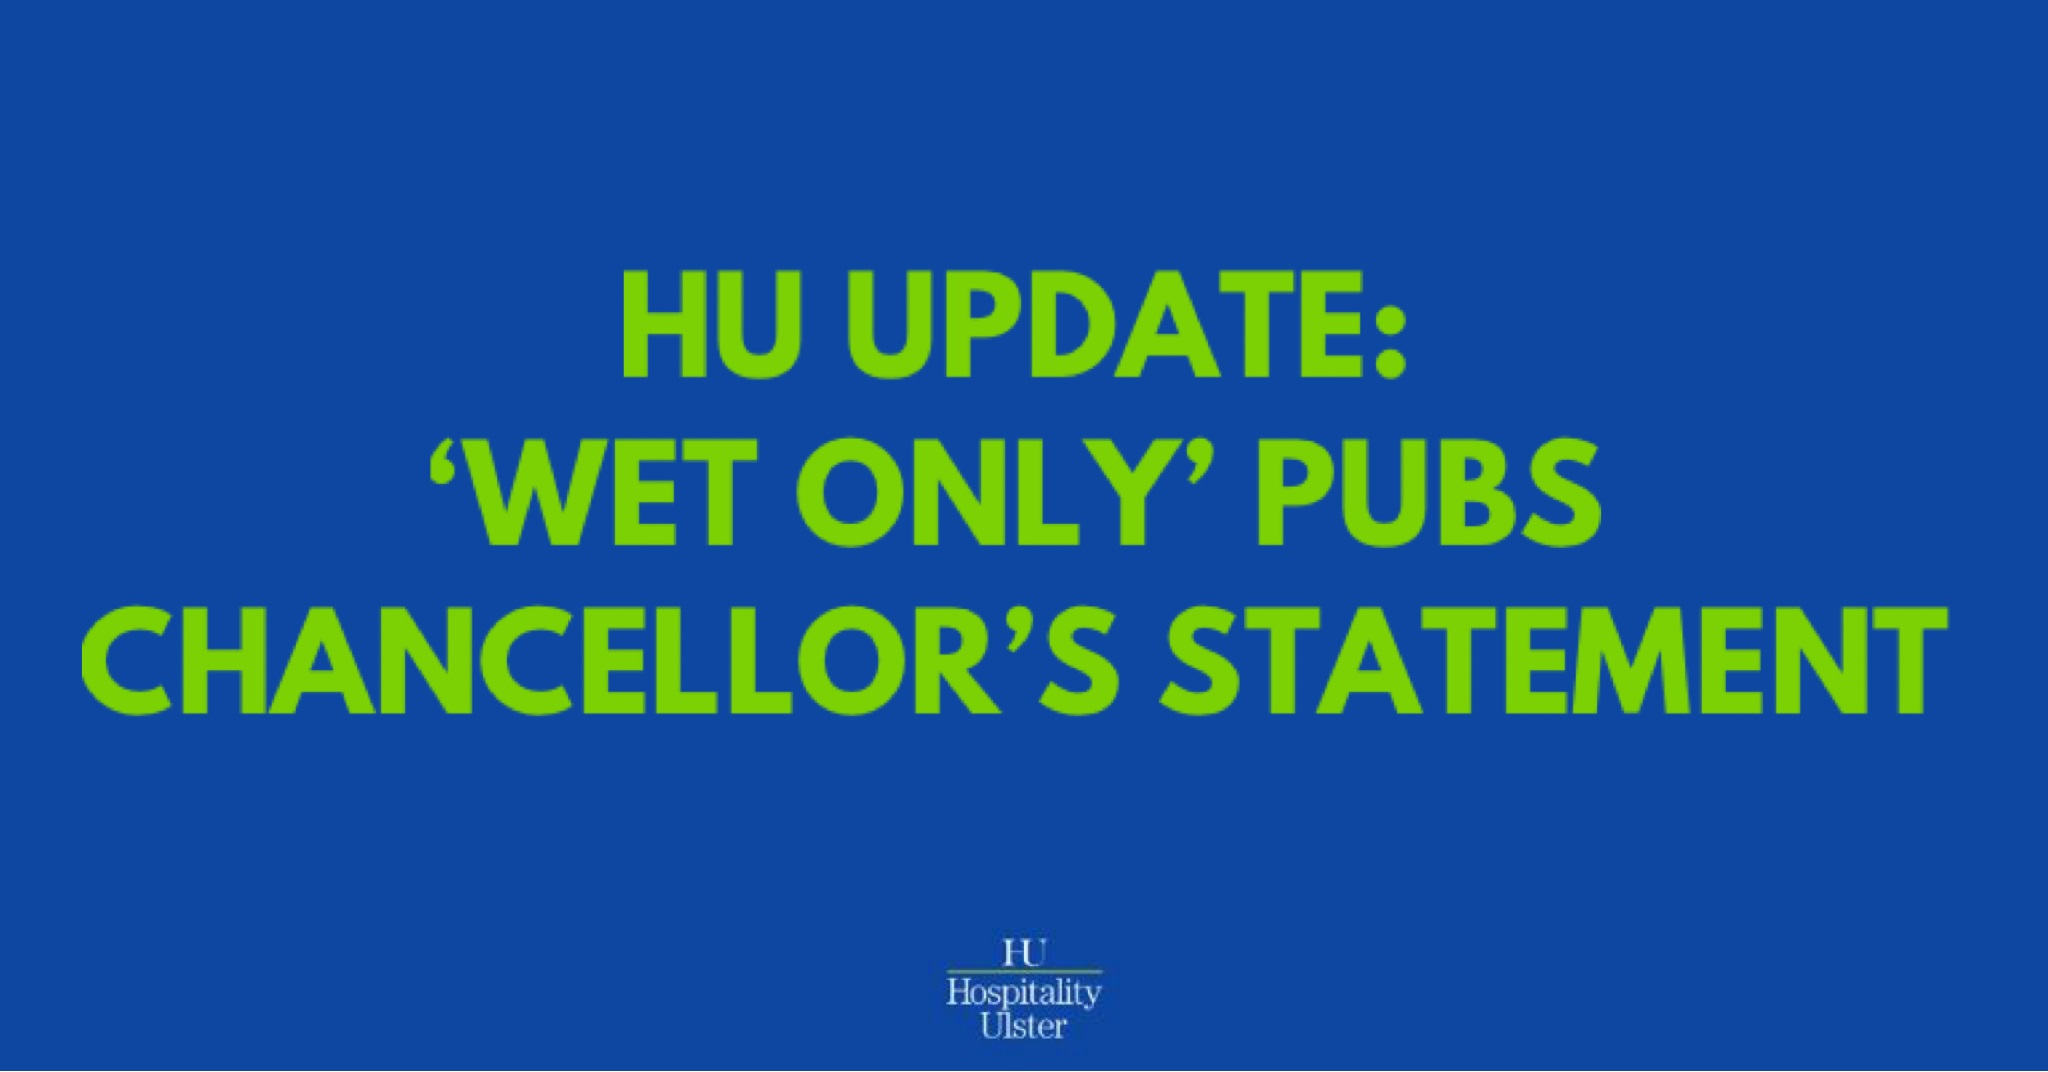 HU UPDATE- WET ONLY PUBS AND CHANCELLOR STATEMENT